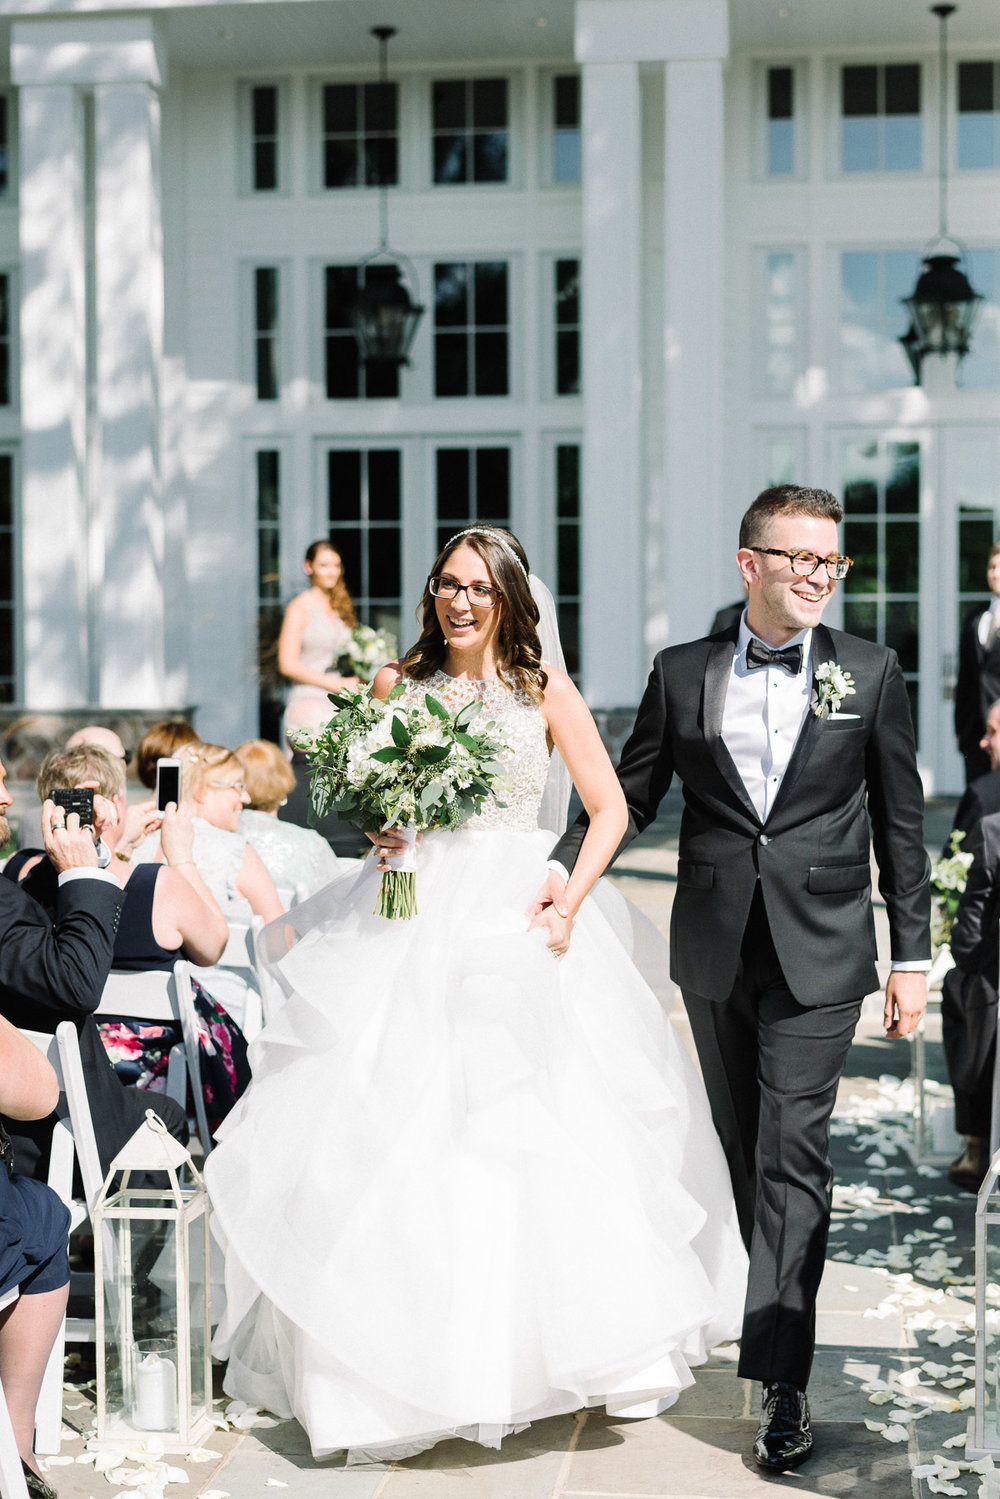 Outdoor wedding at The Ryland Inn